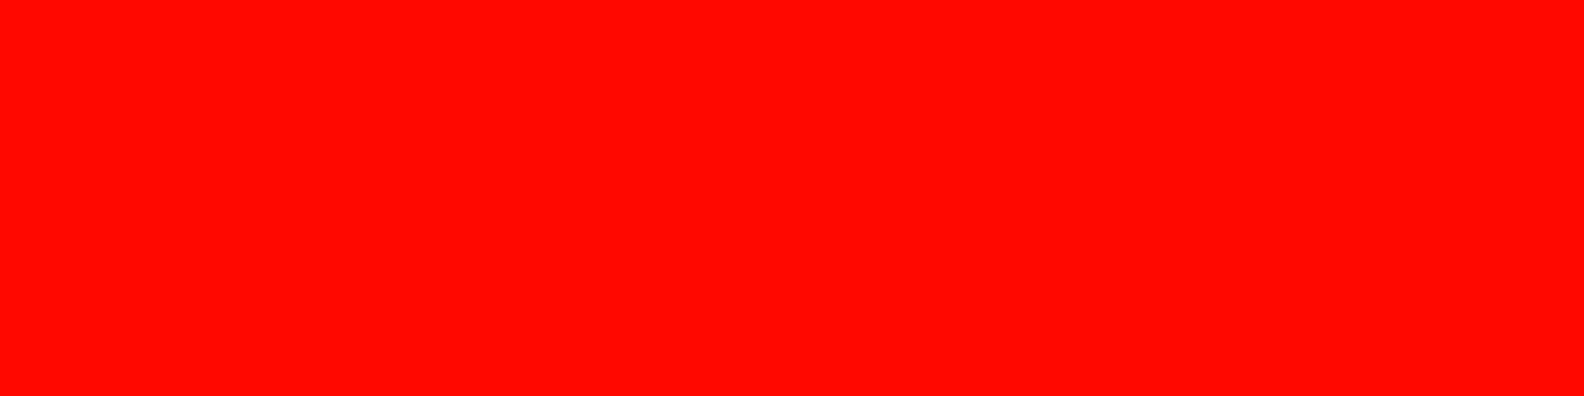 1584x396 Candy Apple Red Solid Color Background